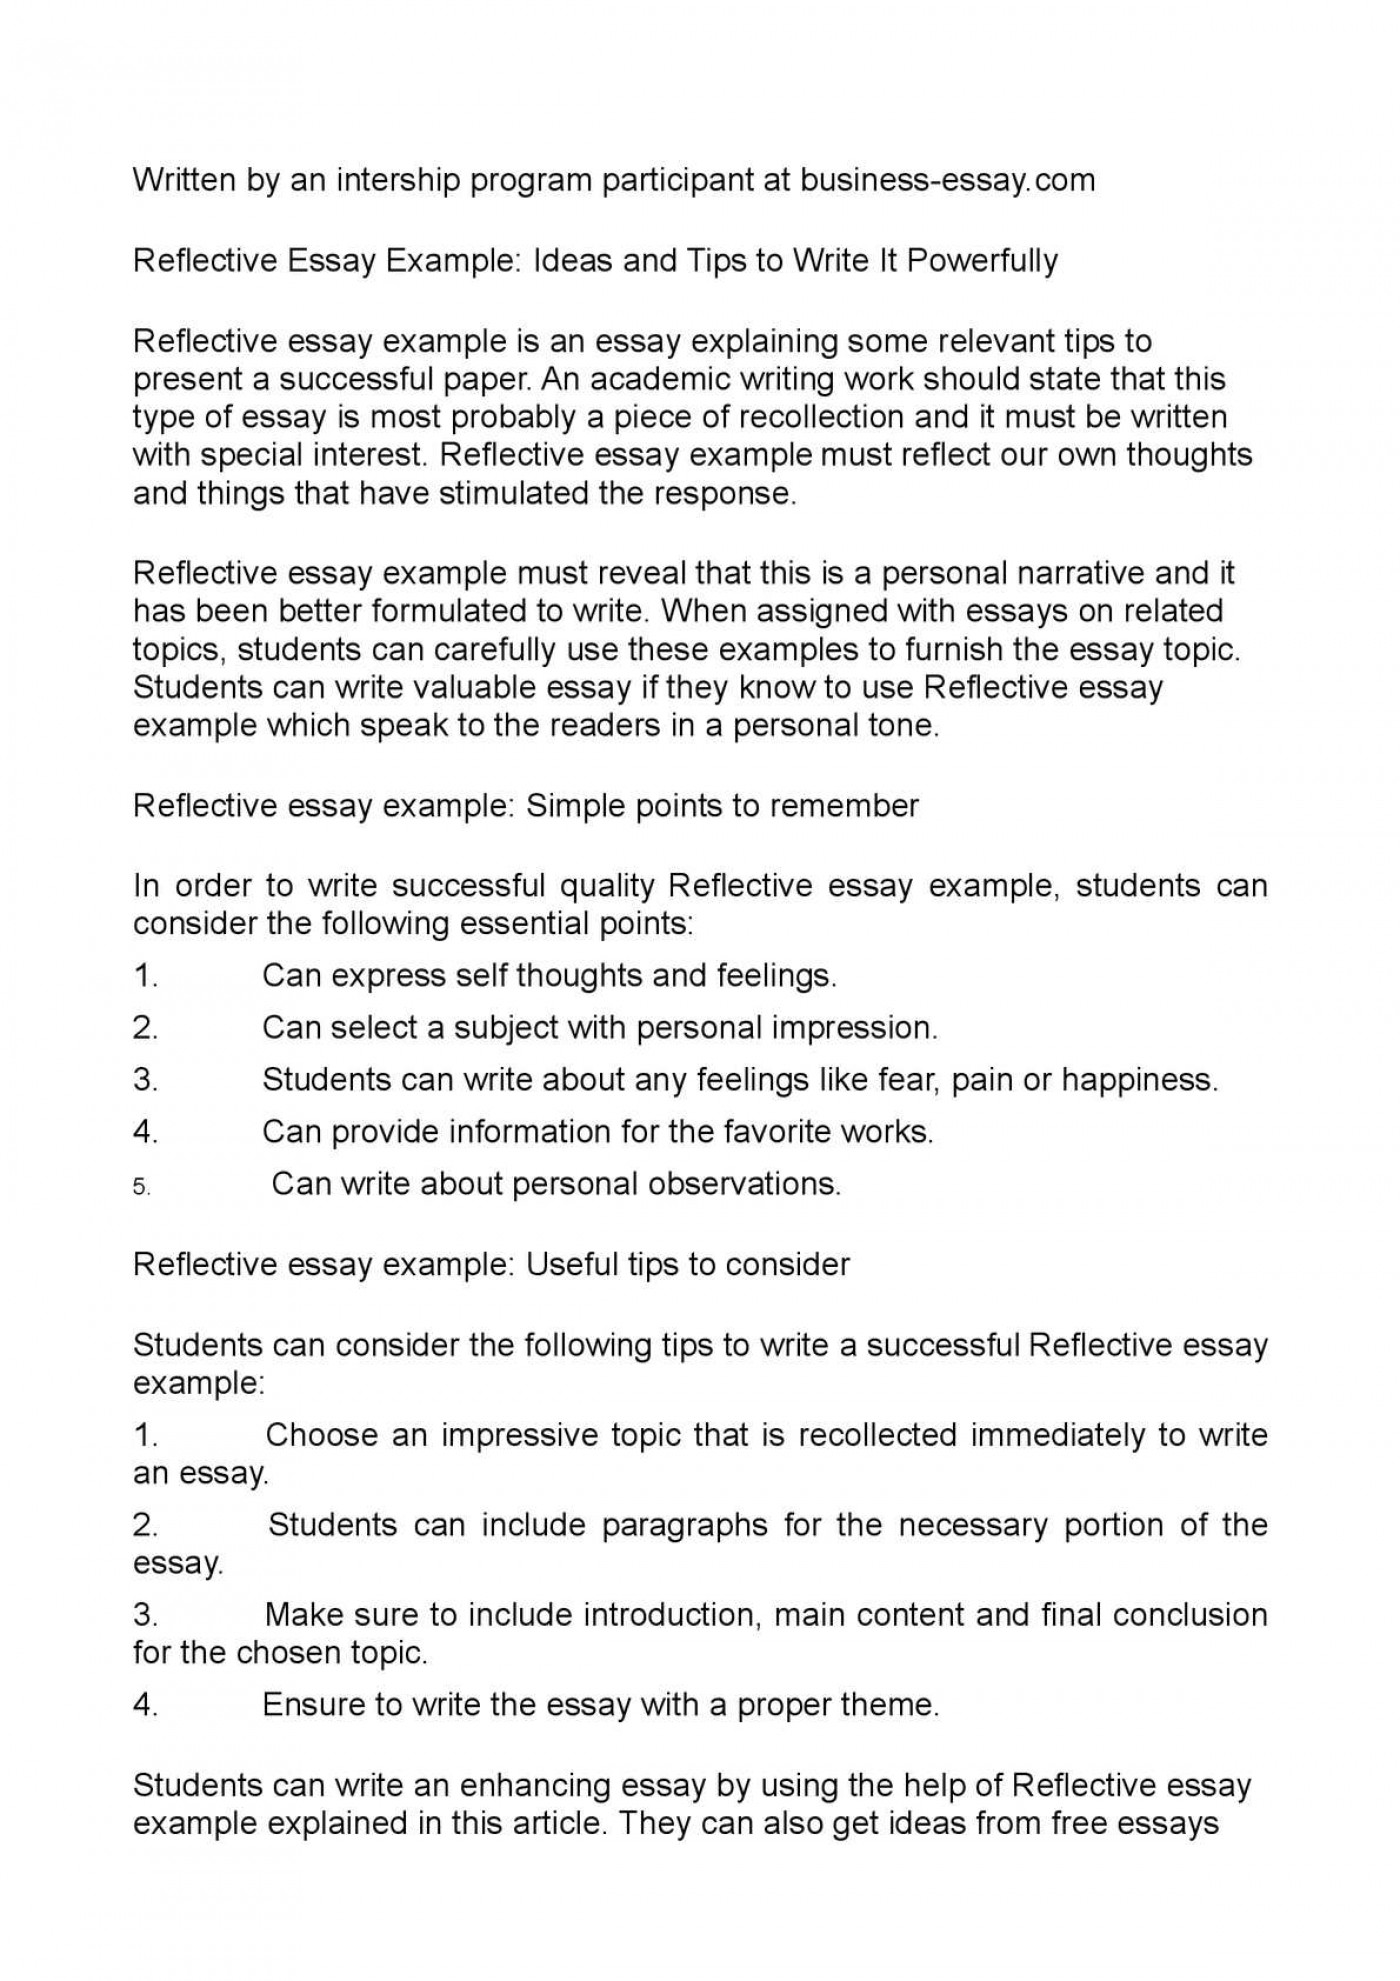 017 Reflective Essay Examples Example Beautiful Sample Pdf About Writing English 101 1400